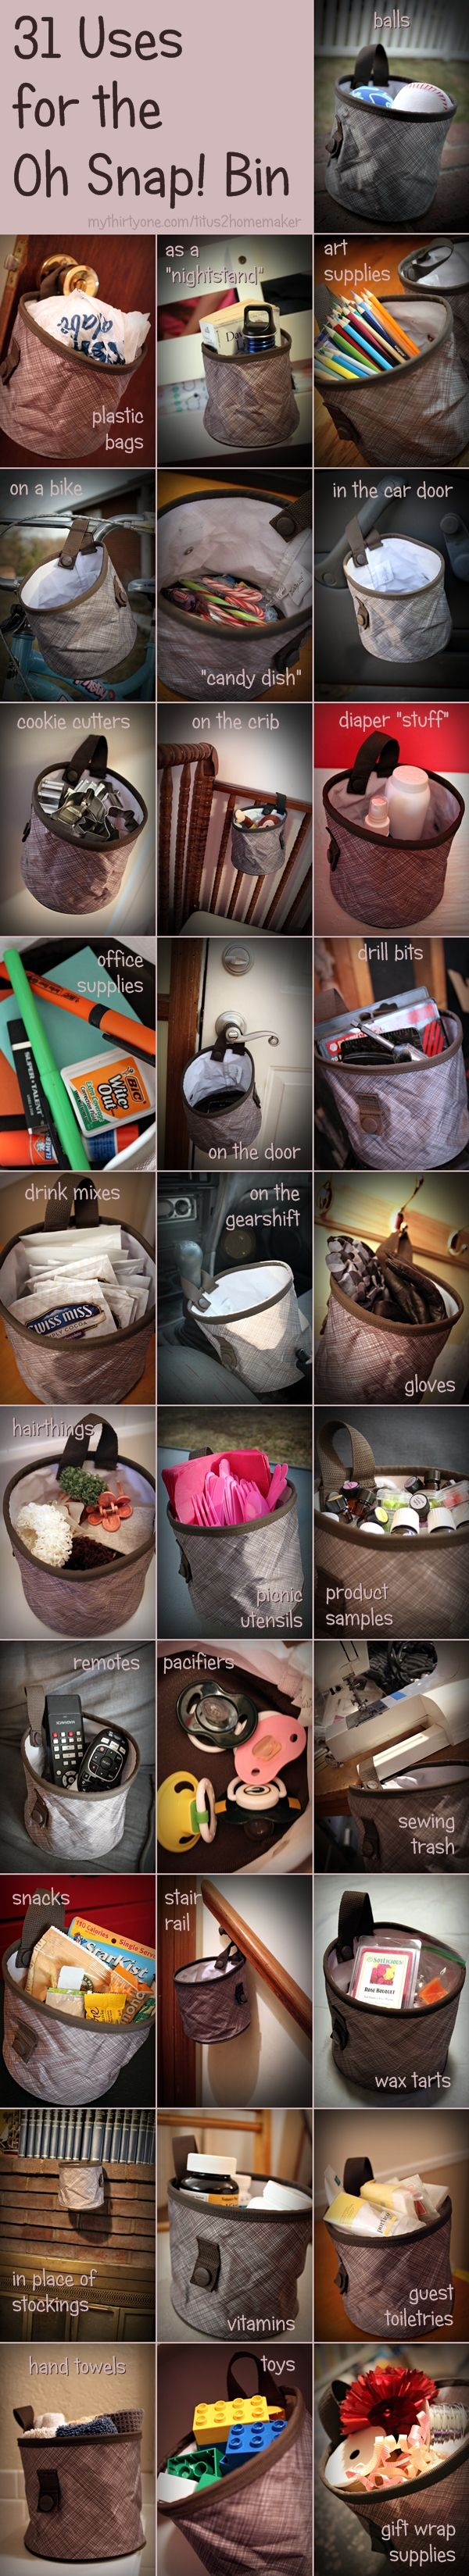 Oh snap bin ideas - 31 Ways To Use The Oh Snap Bin These Ideas Should Get You Started